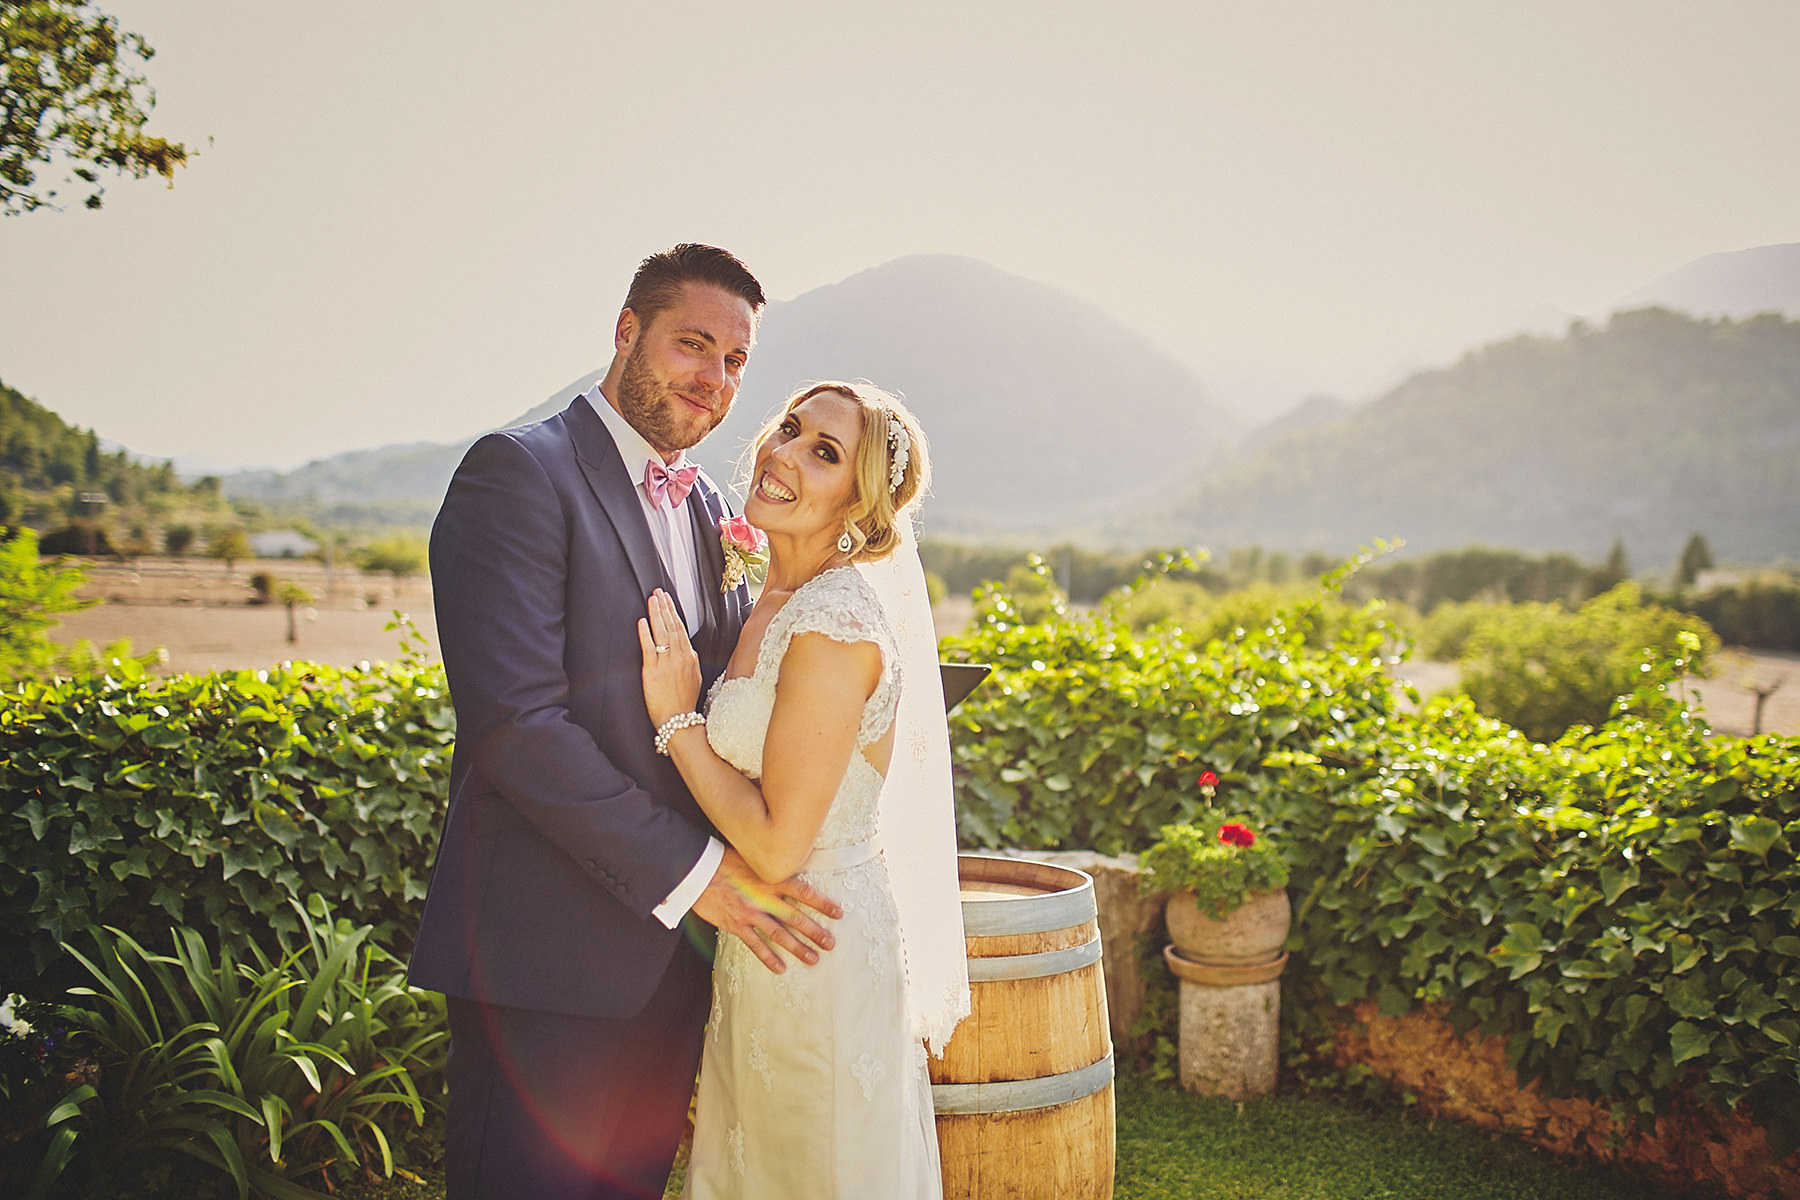 265 - Destination wedding in a magical Mallorca